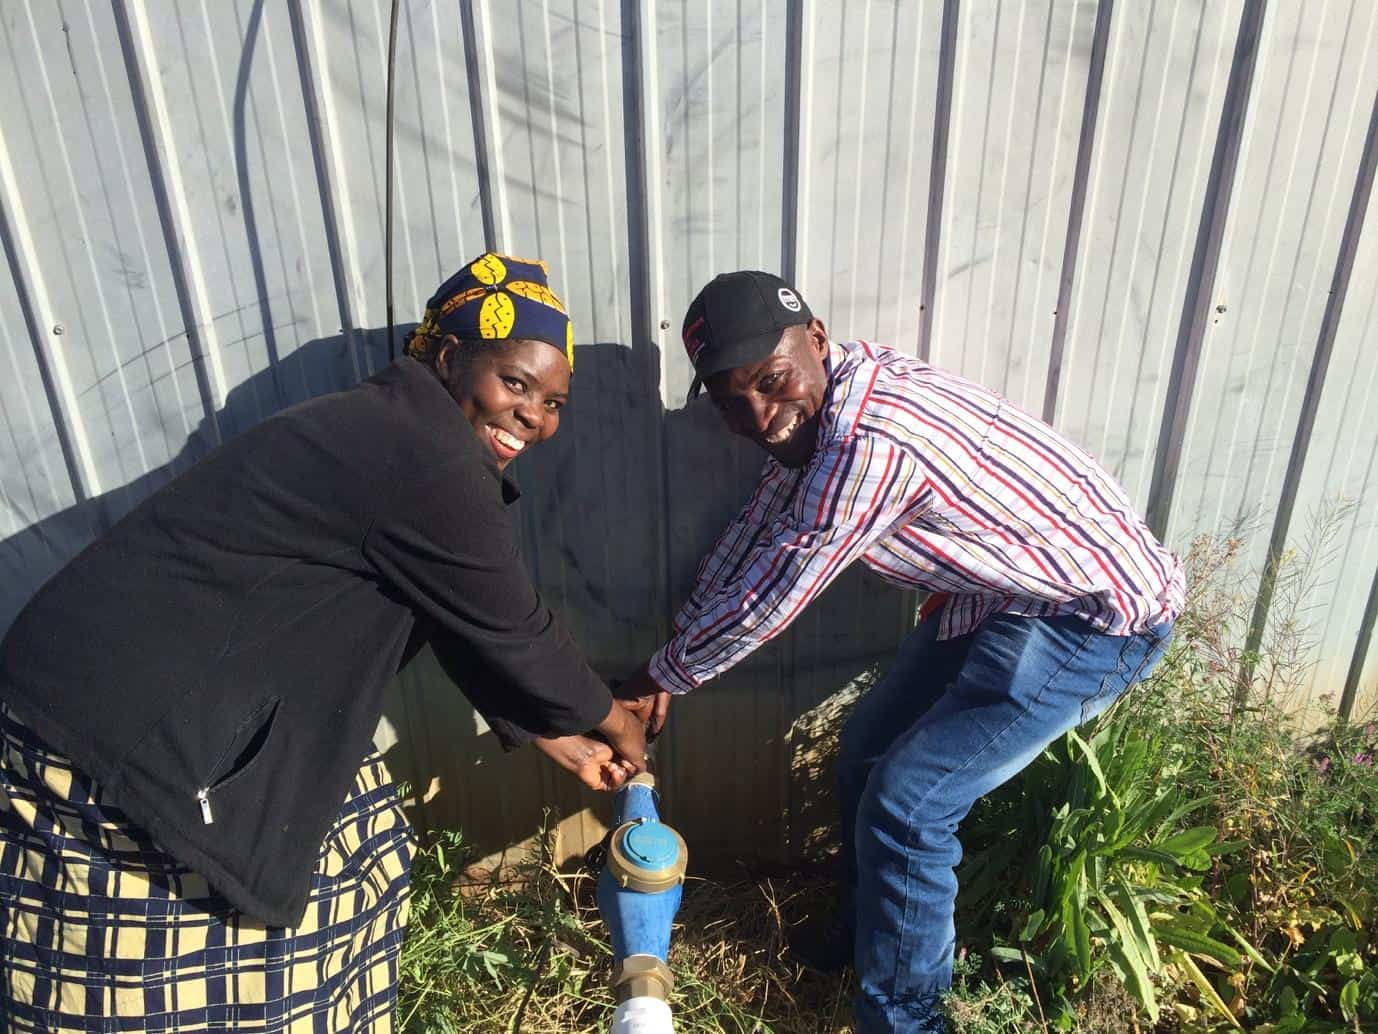 Community Water Bank: Building Resilience for Small-Scale Community Regenerative Farming